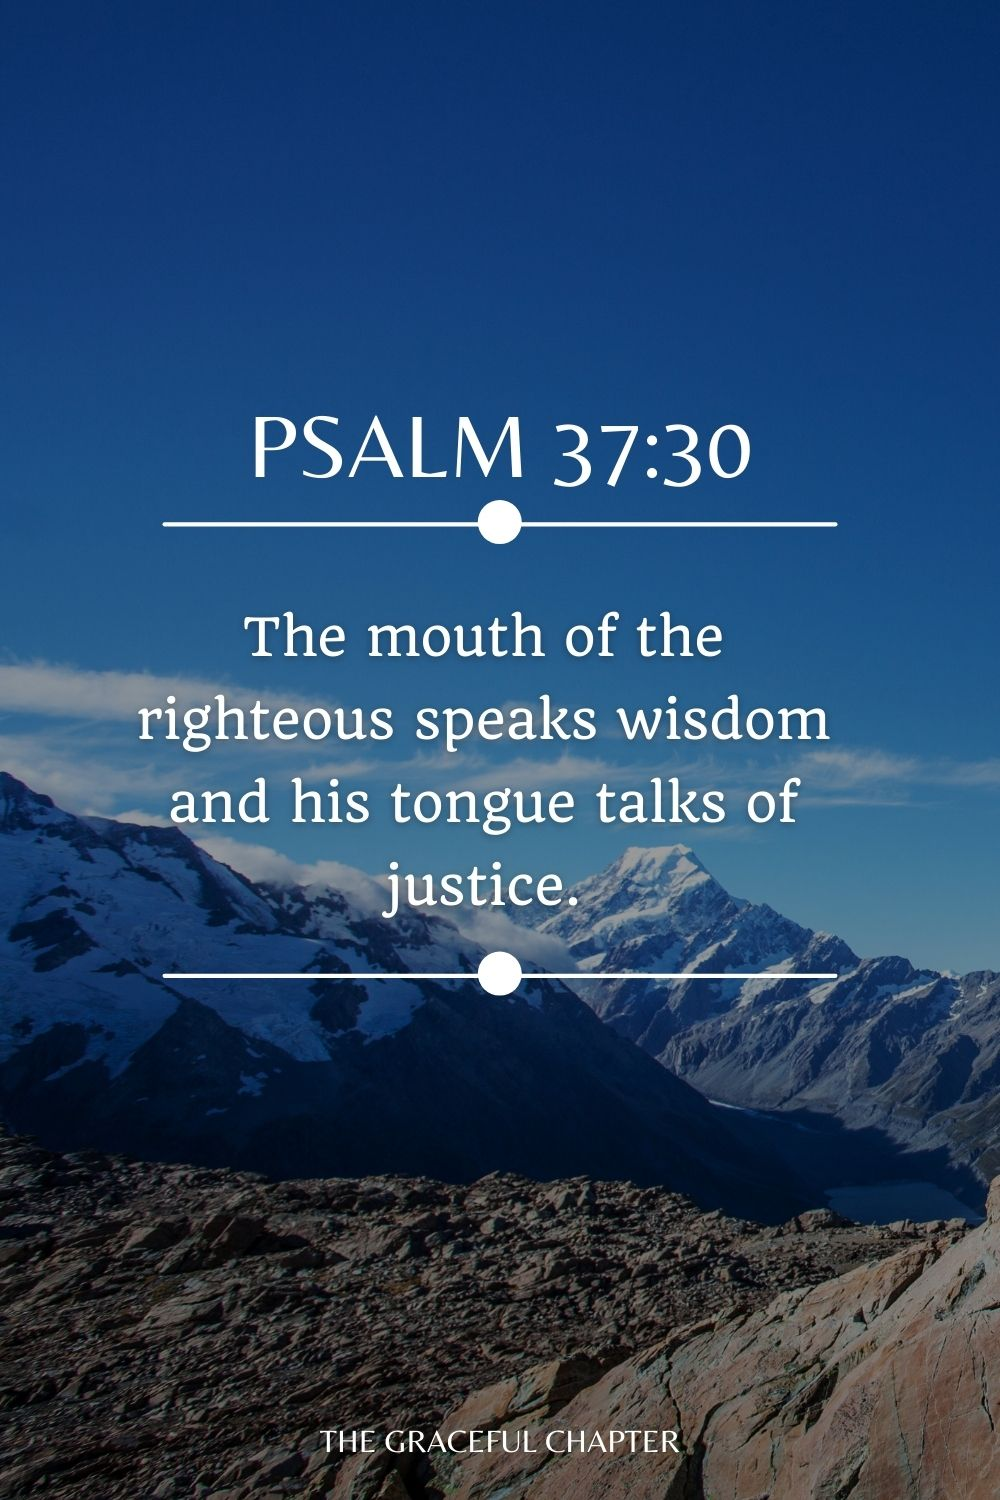 The mouth of the righteous speaks wisdom and his tongue talks of justice. Psalm 37:30